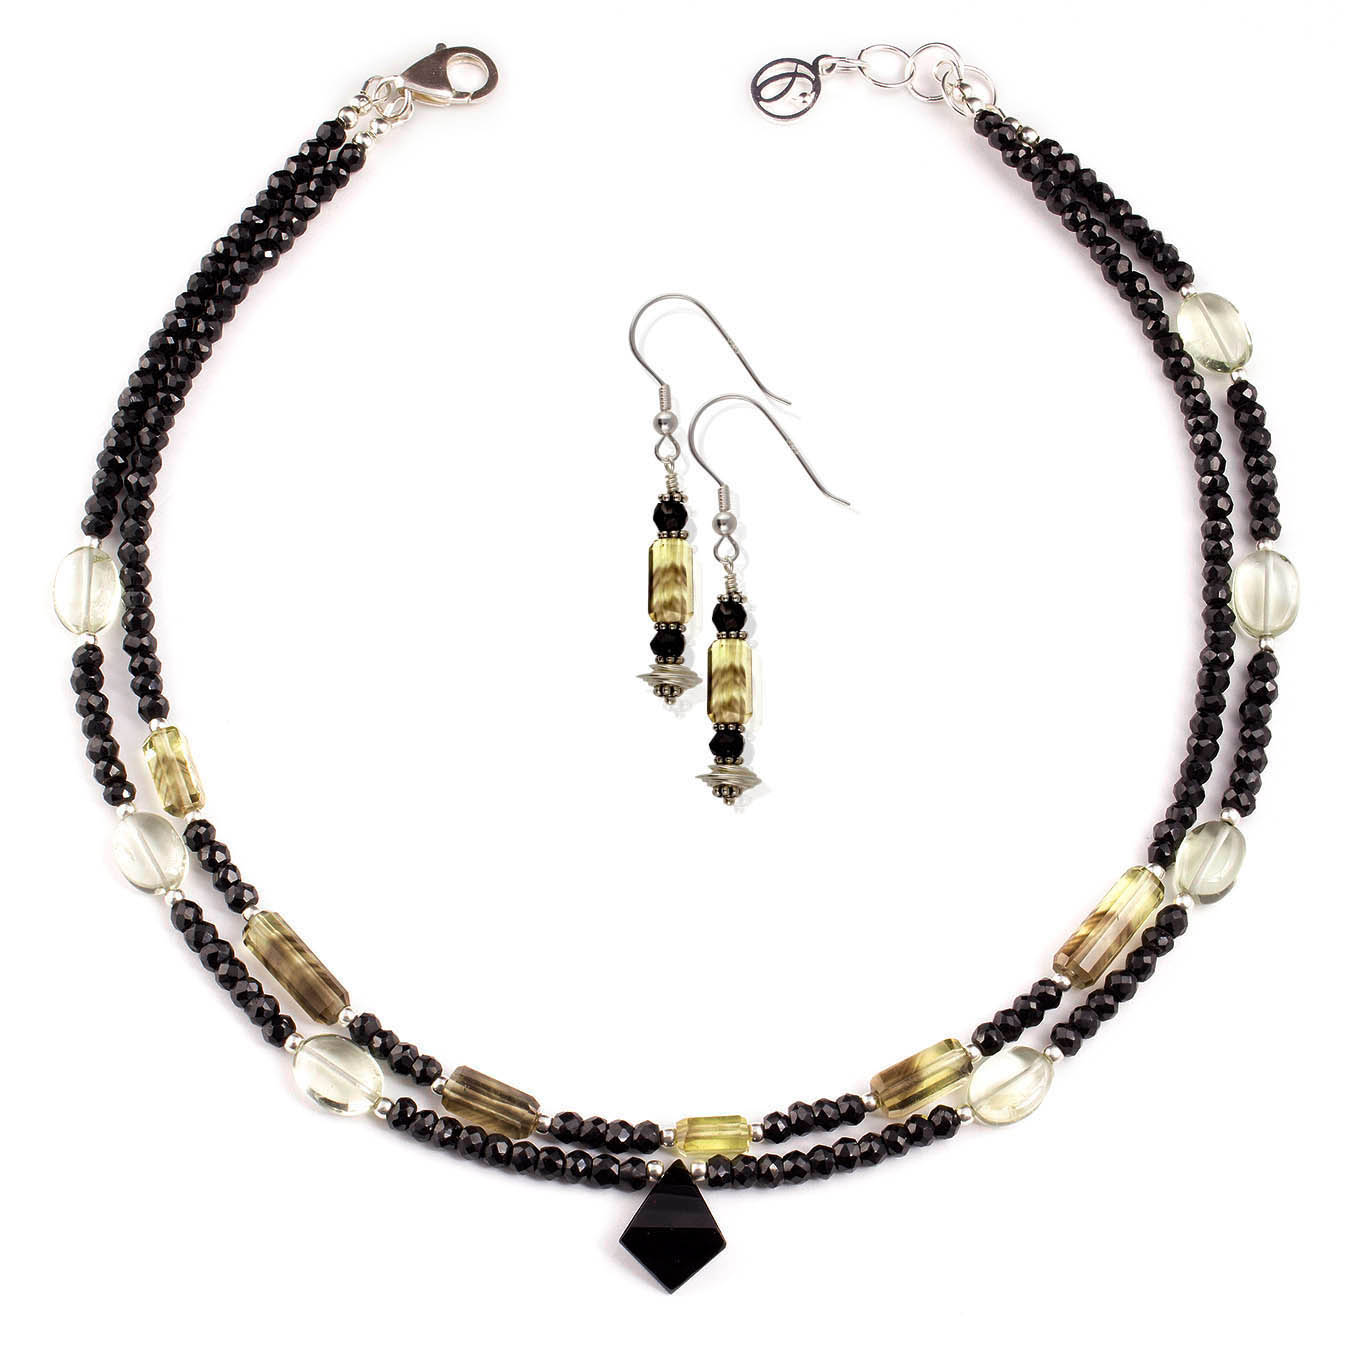 Handcrafted jewelry made with spinel, lemon quartz and green amethyst